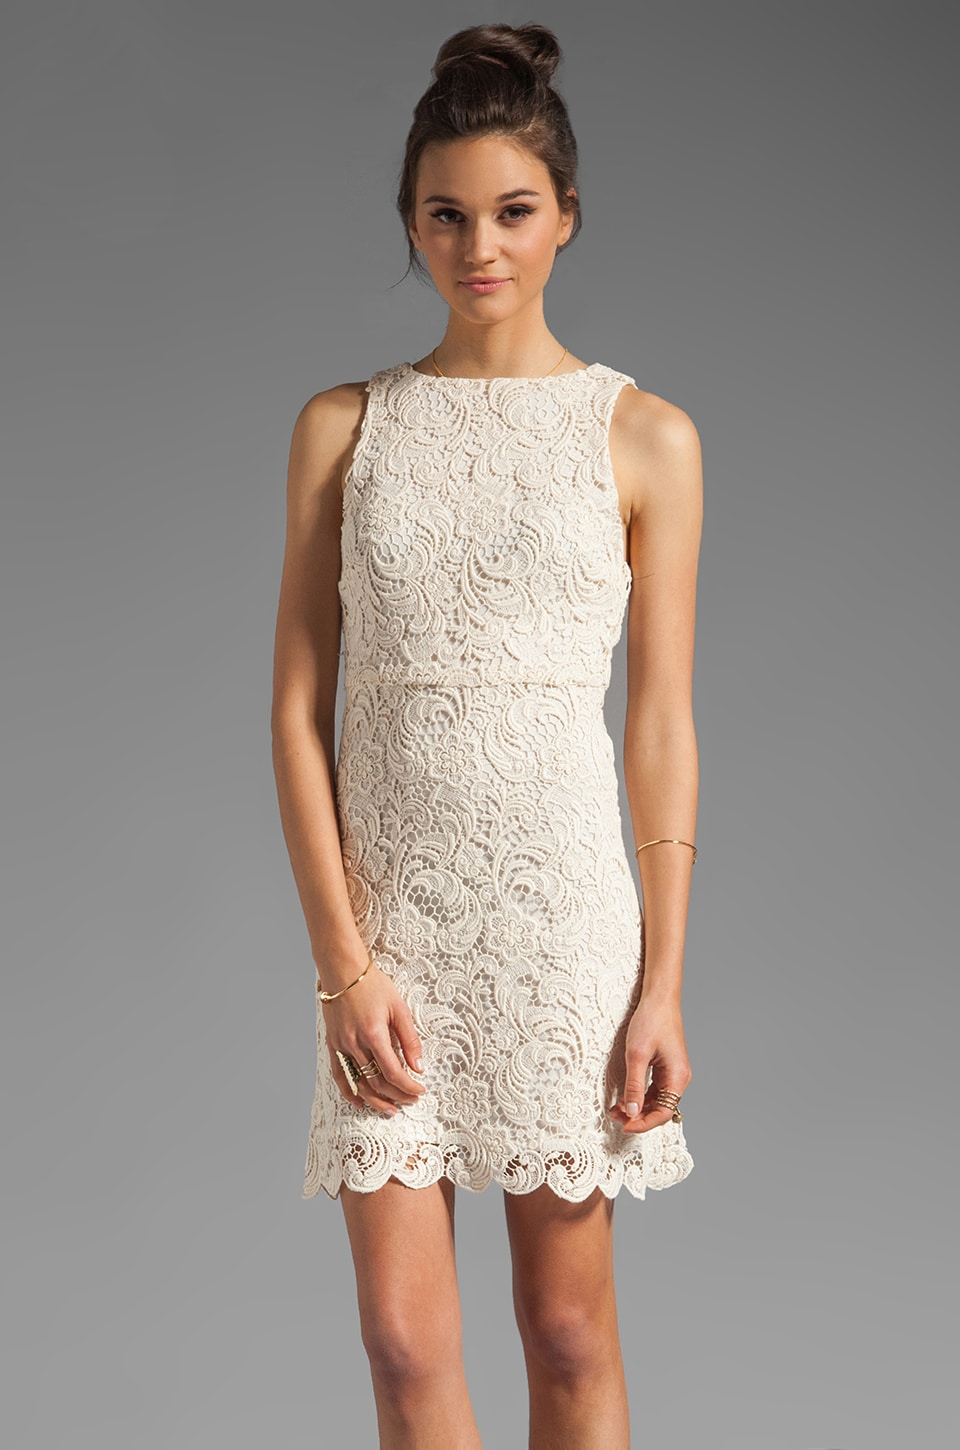 Alice + Olivia Ingrid Sleeveless A-Line Dress in Cream